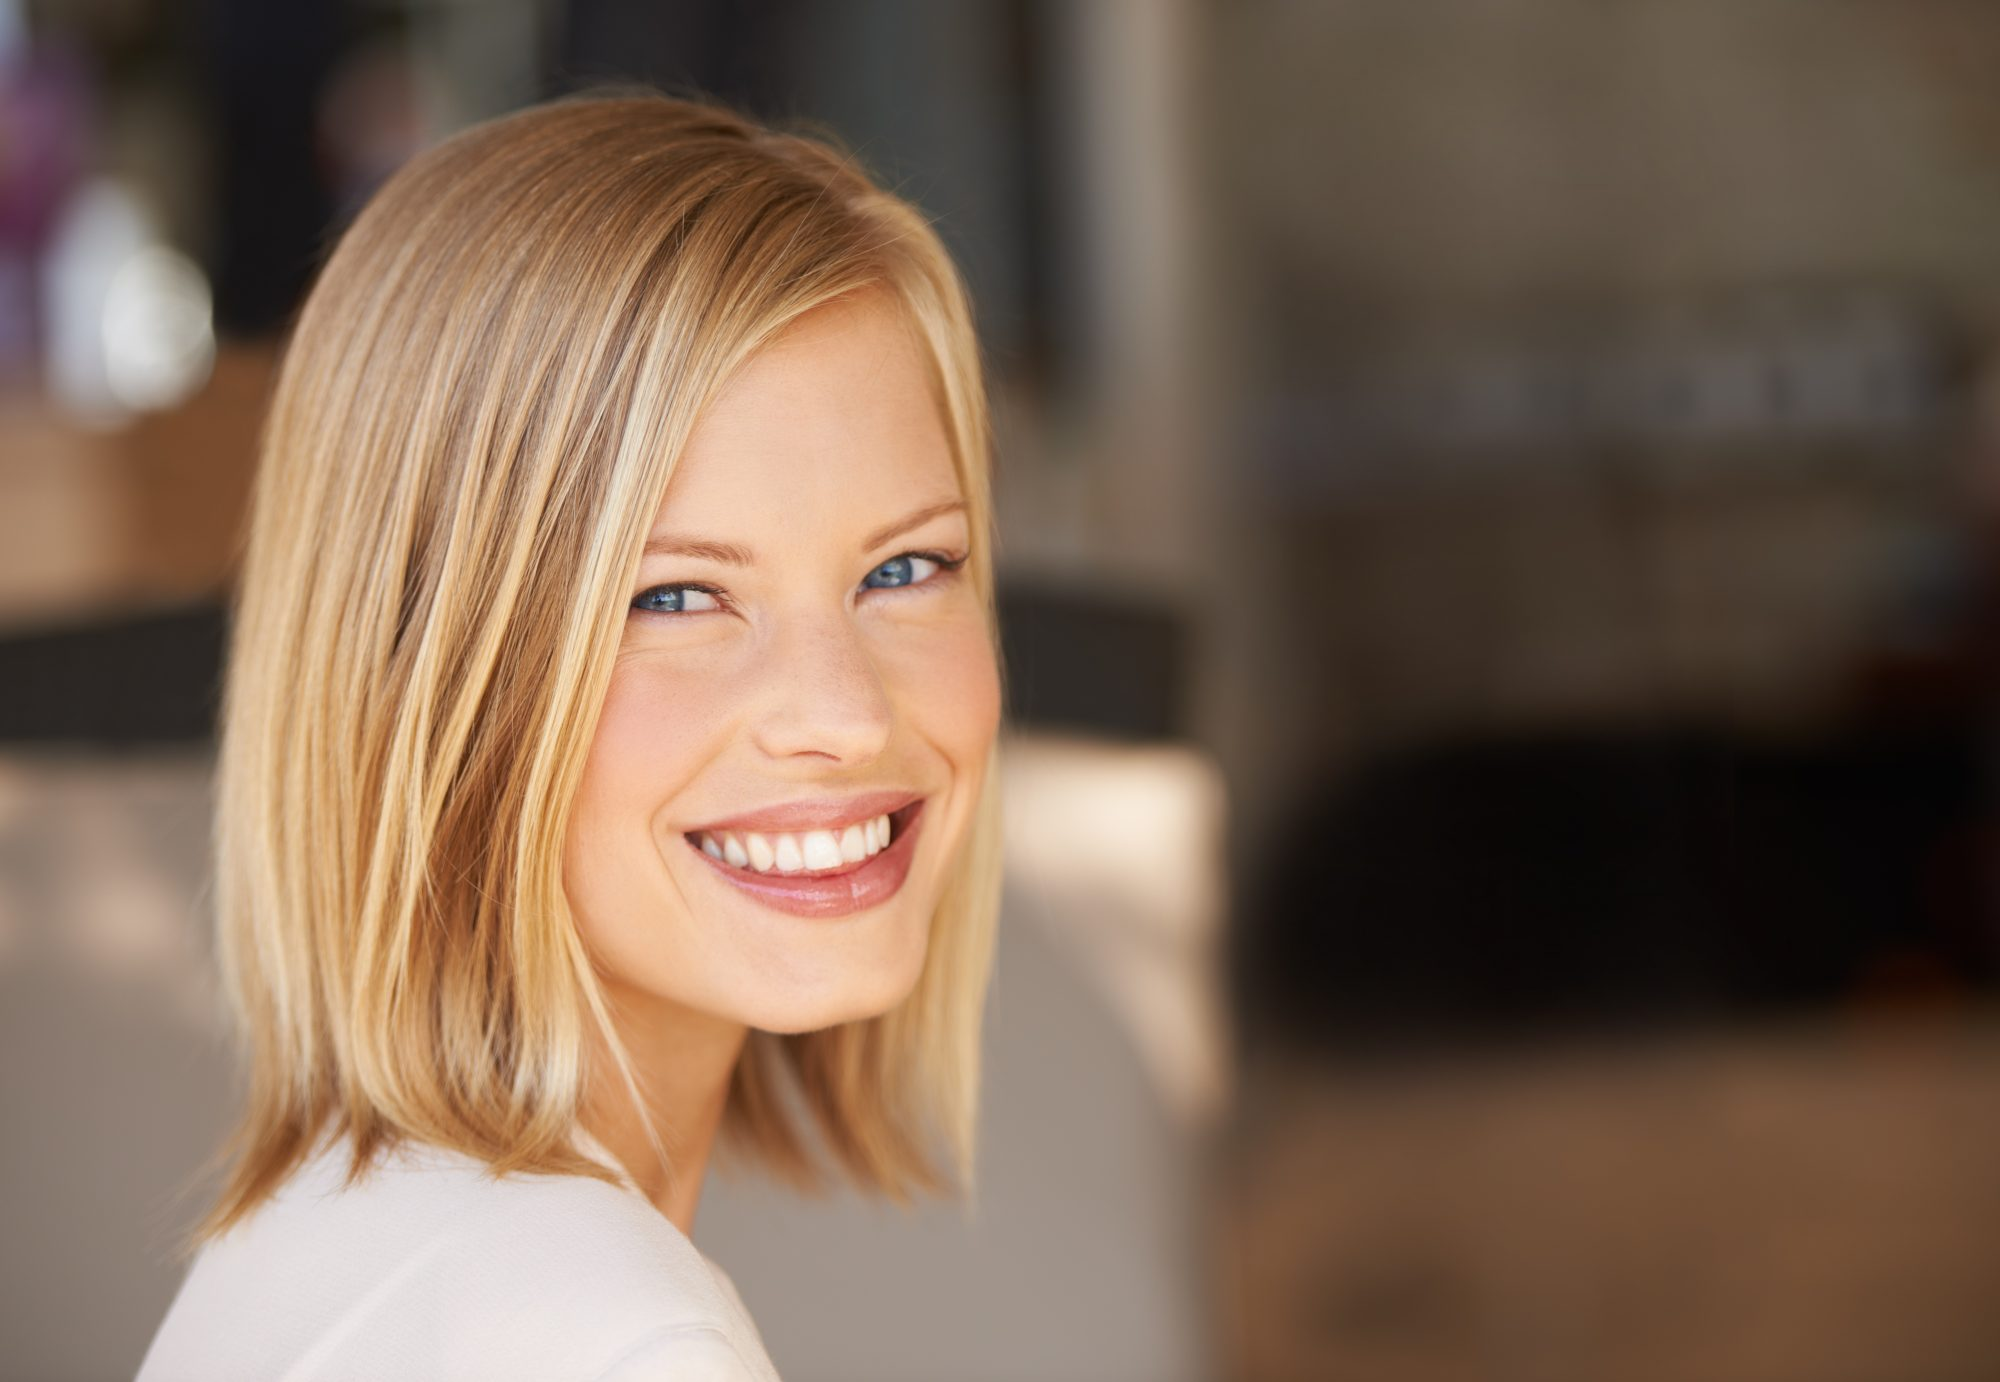 Blonde Woman with Lob Haircut